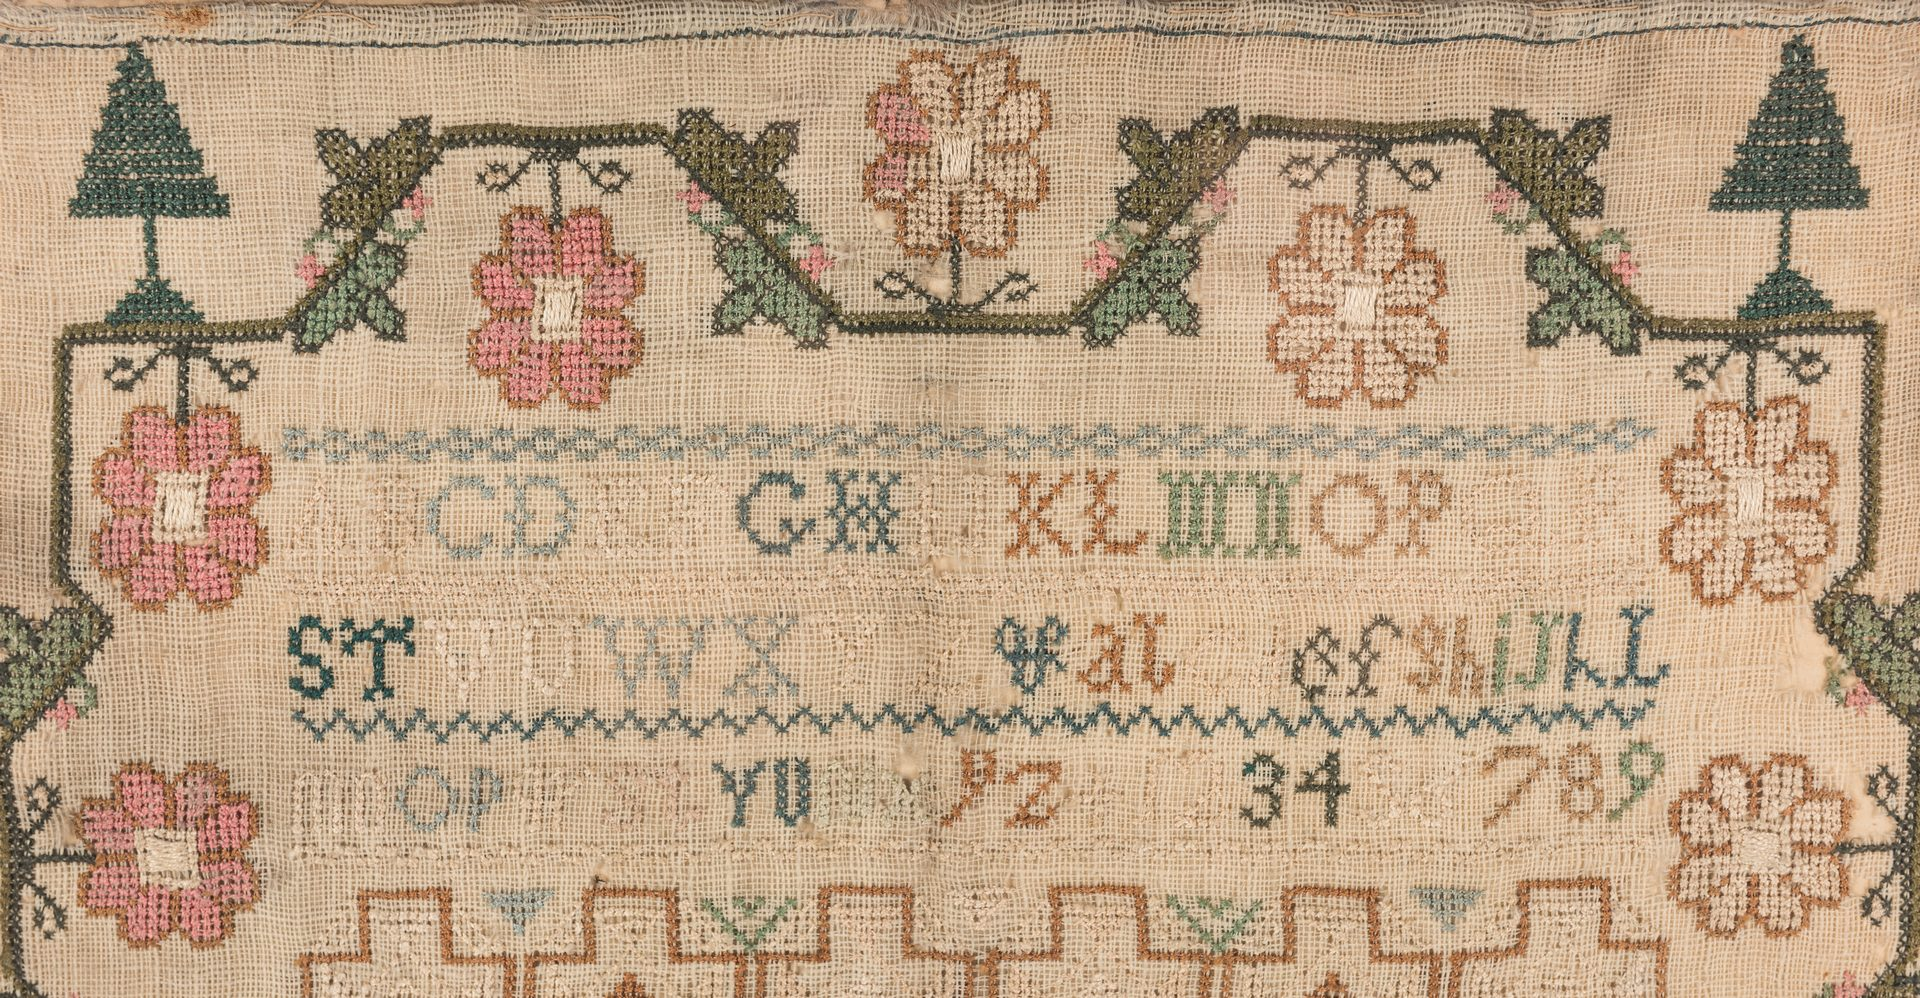 Lot 644: 3 19th Cent. Needlework Samplers